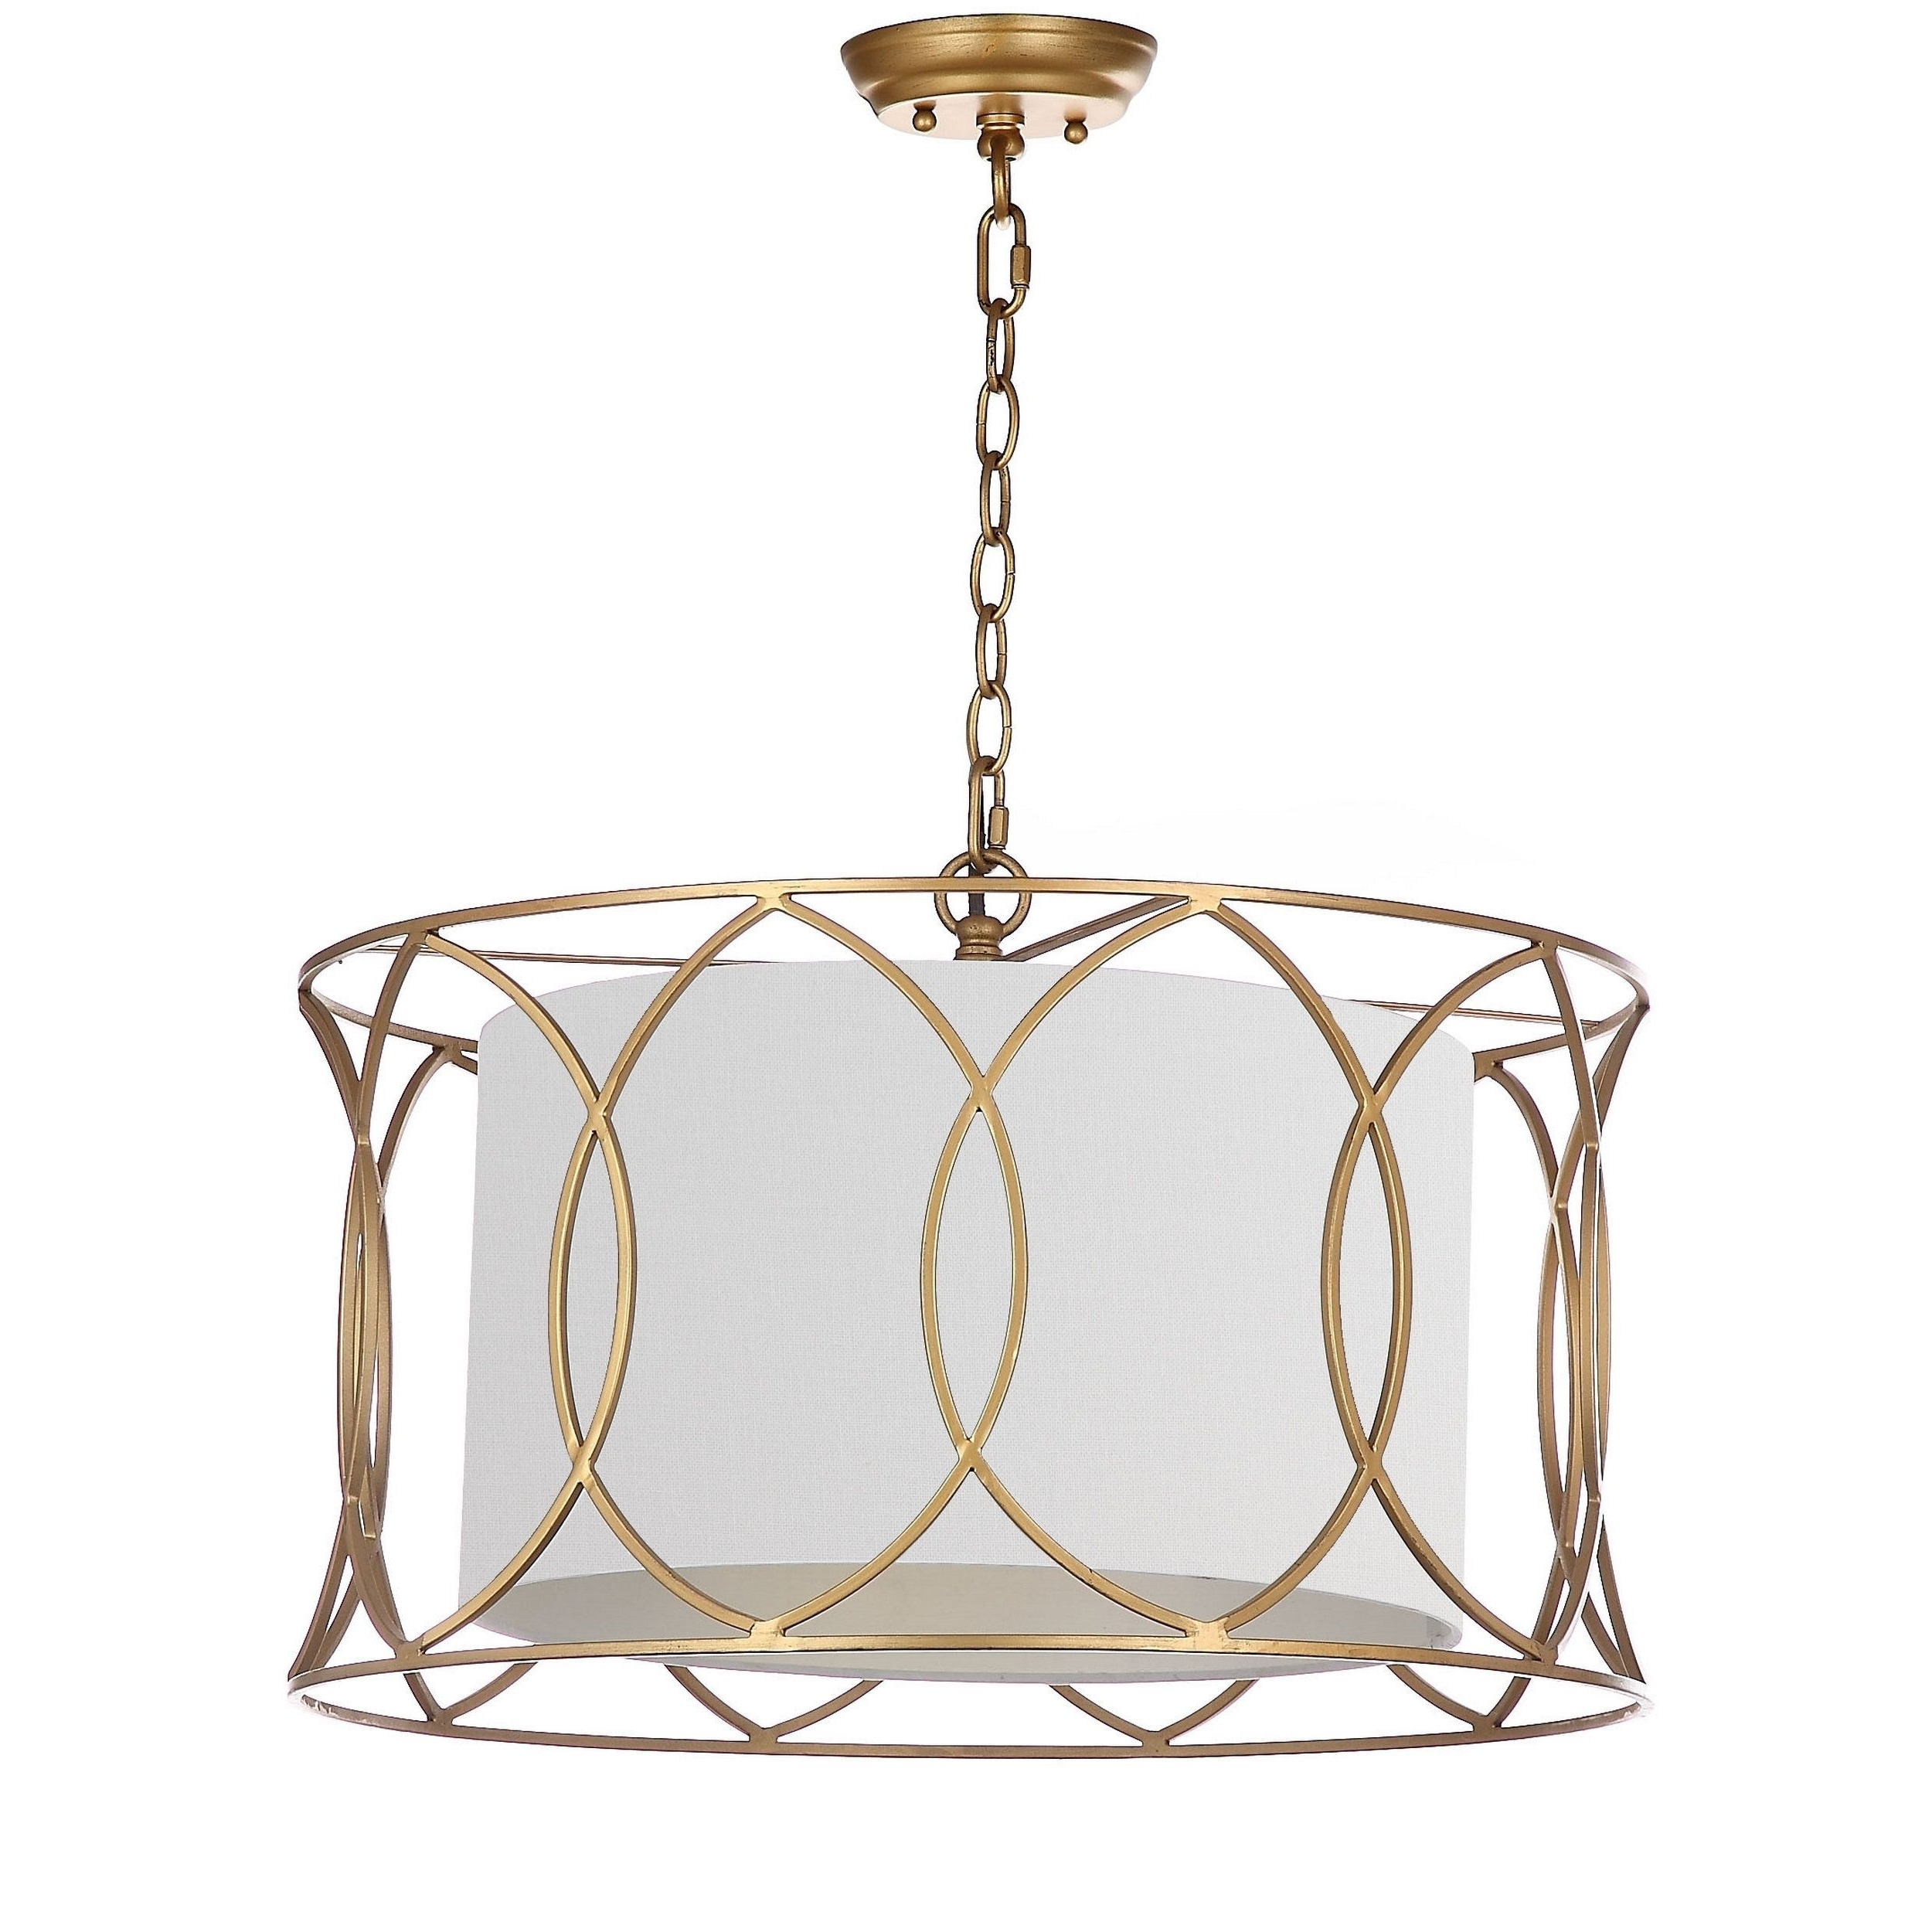 Armande 3 Light Lantern Geometric Pendants Regarding Most Current Safavieh Lighting Silas Gold Adjustable Pendant Lamp (View 4 of 20)